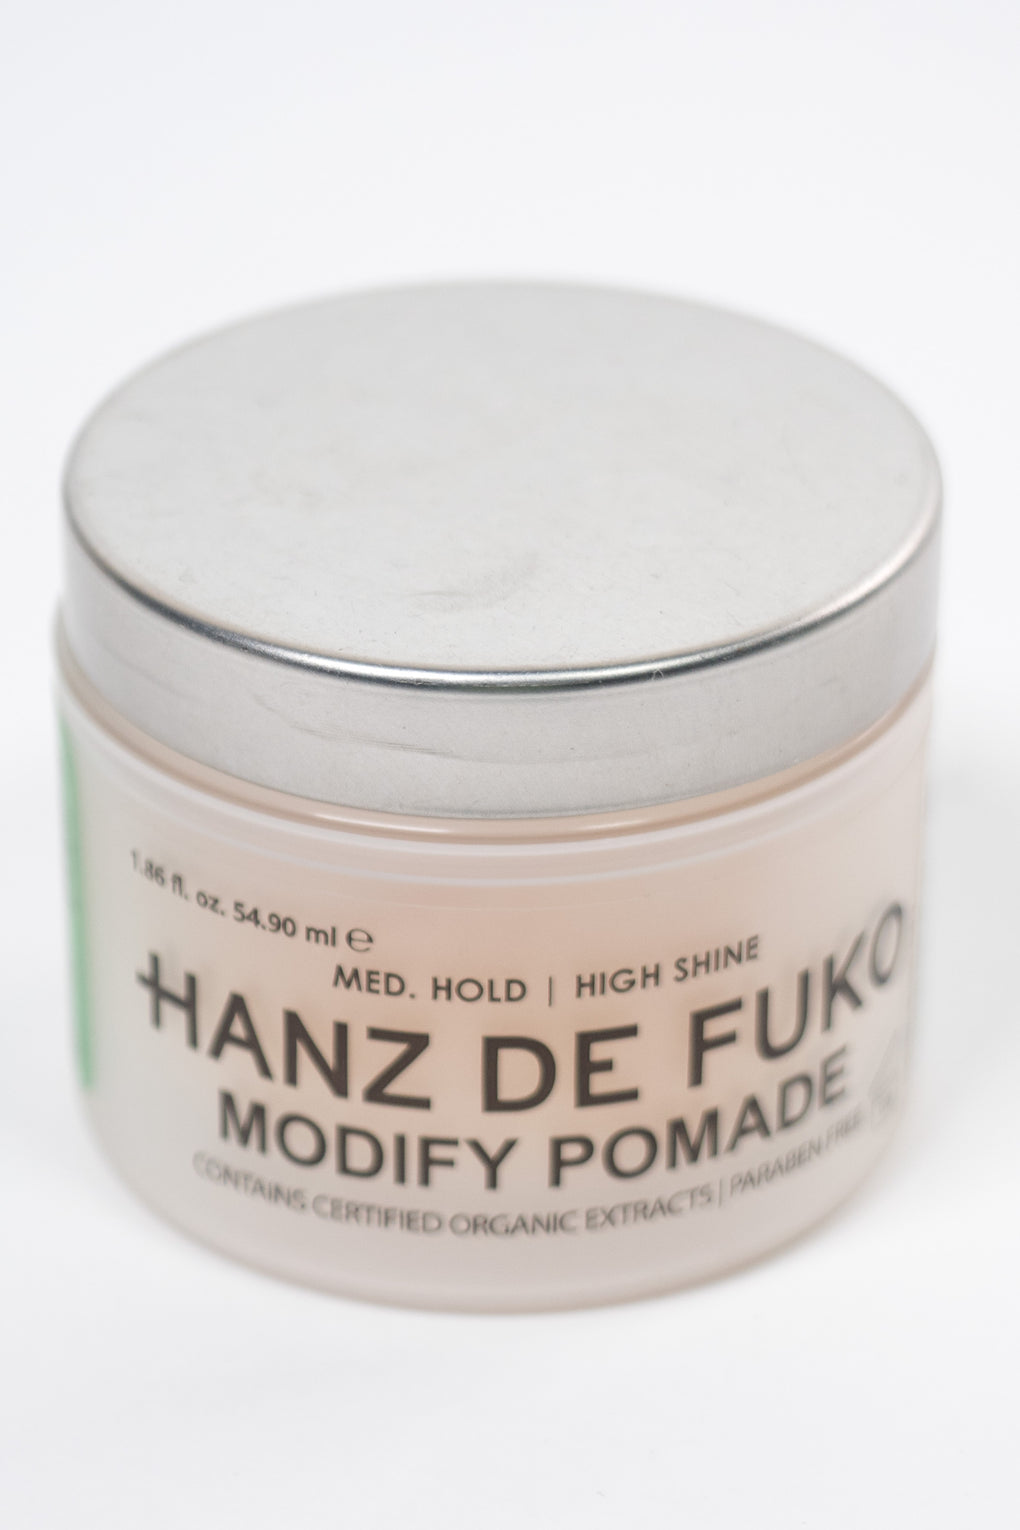 Hanz de Fuko Modify Pomade at Consigliere